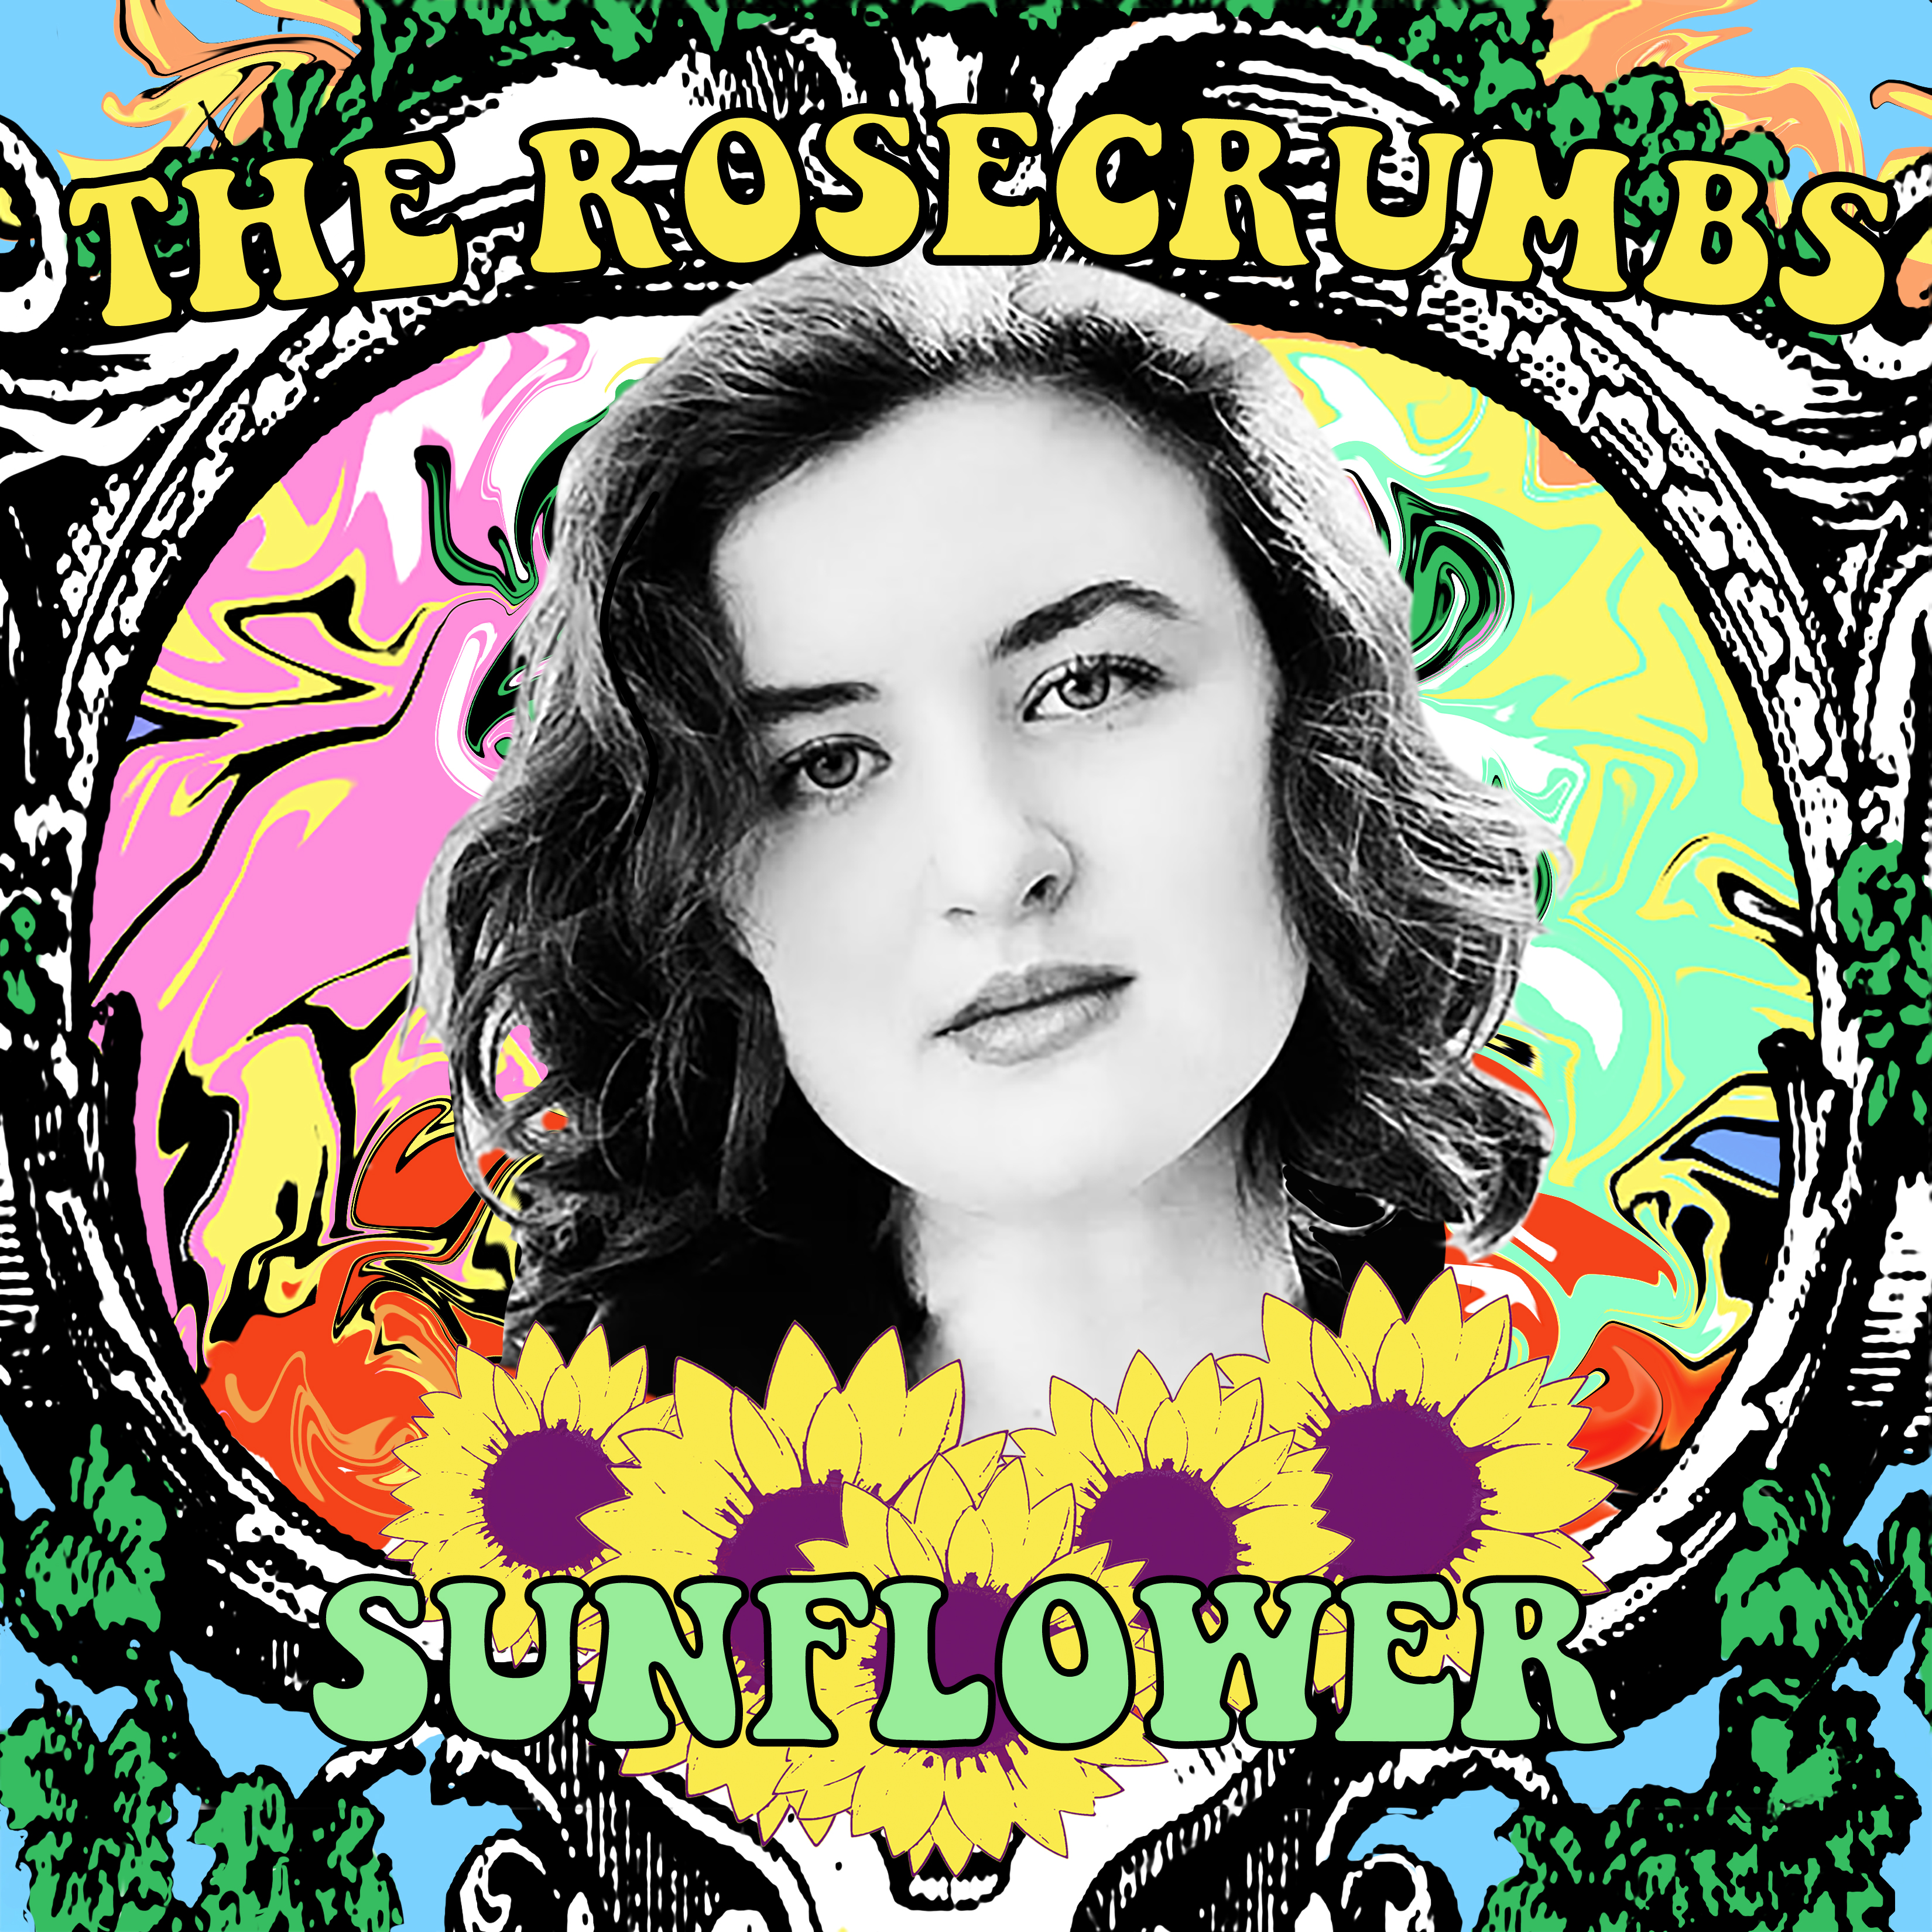 """The RoseCrumbs Featuring Devon Gordon and Stephen Perkins (Jane's Addiction) Highly Anticipated Debut Single """"Sunflower"""" Now Available Worldwide"""